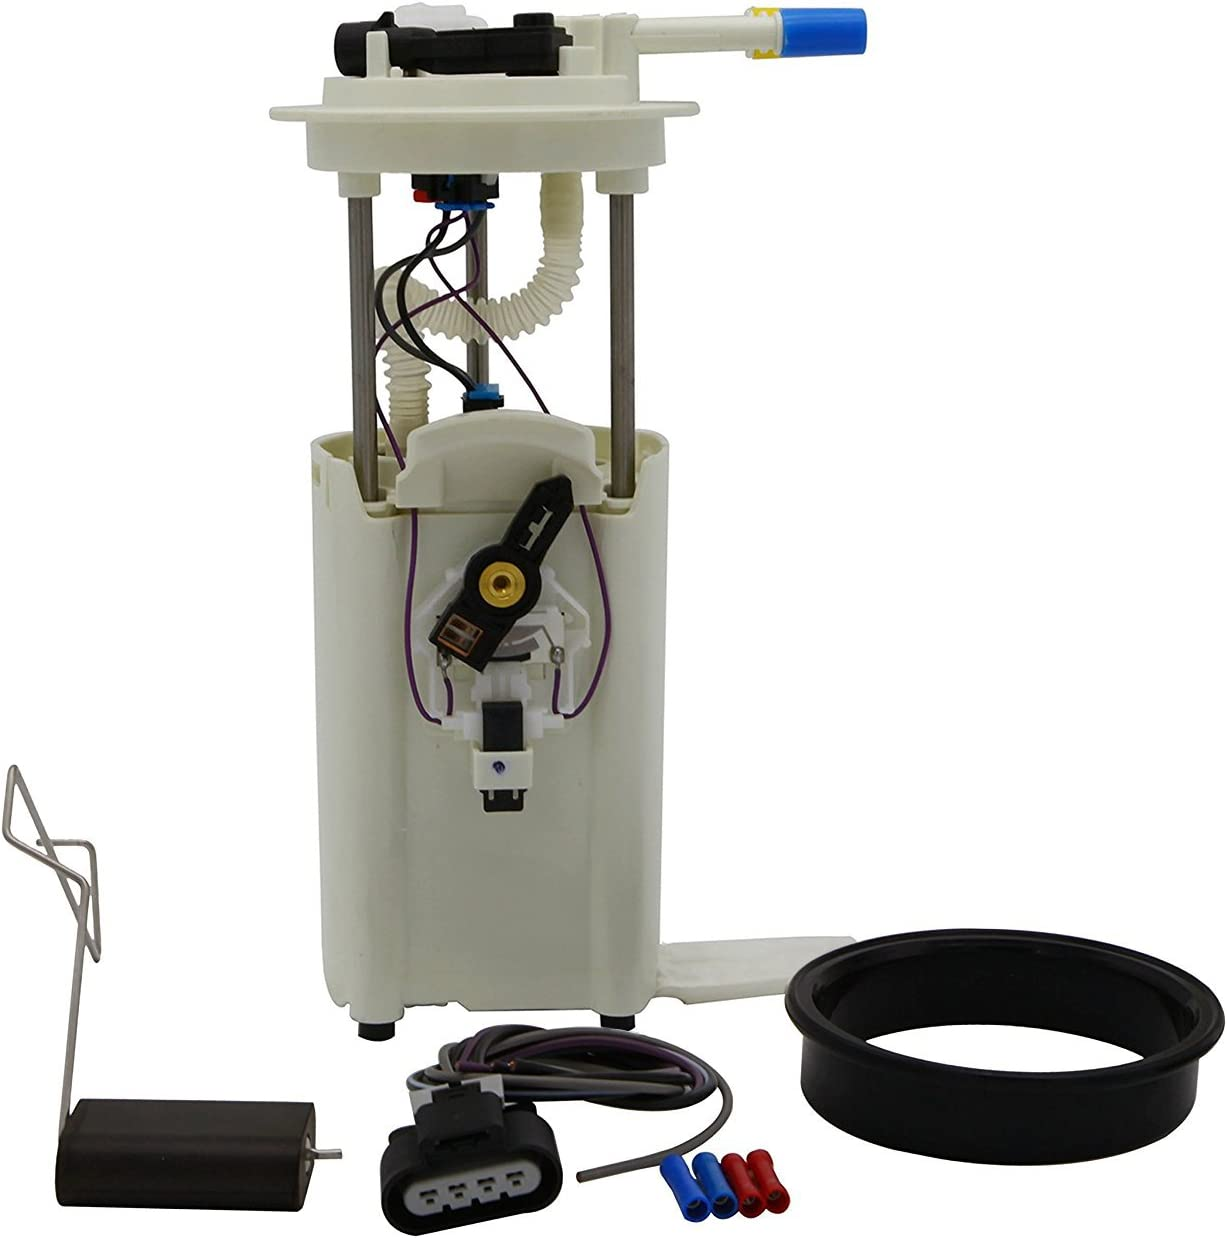 New product! New type Fuel Pump Lowest price challenge FP3508M for: Escalade 02-03 00-03 6.0L Tahoe 5.3L 4